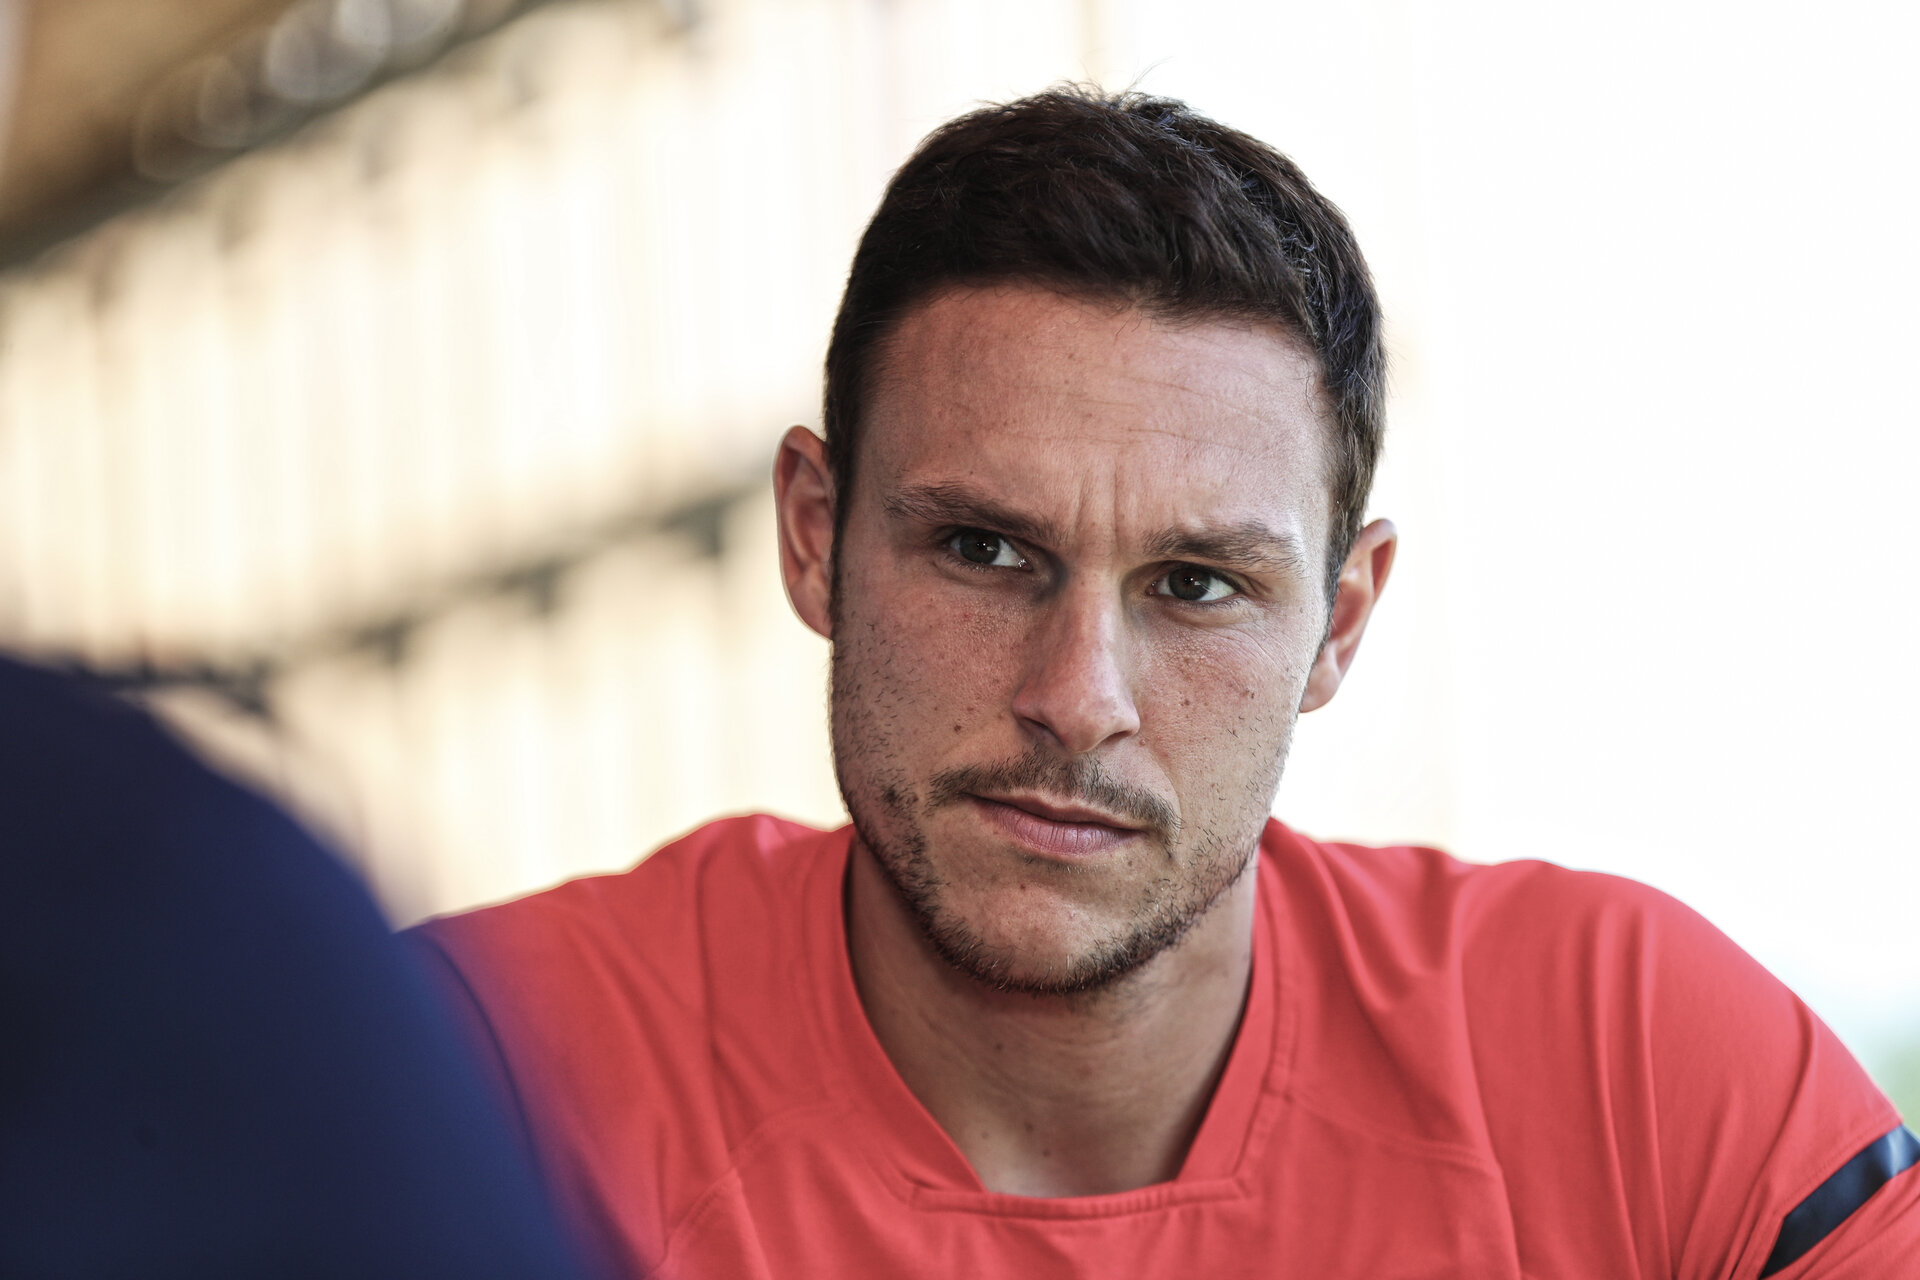 SOUTHAMPTON, ENGLAND - AUGUST 21: Alex McCarthy pictured during a club interview at the Staplewood Campus on August 21, 2018 in Southampton, England. (Photo by Matt Watson/Southampton FC via Getty Images)